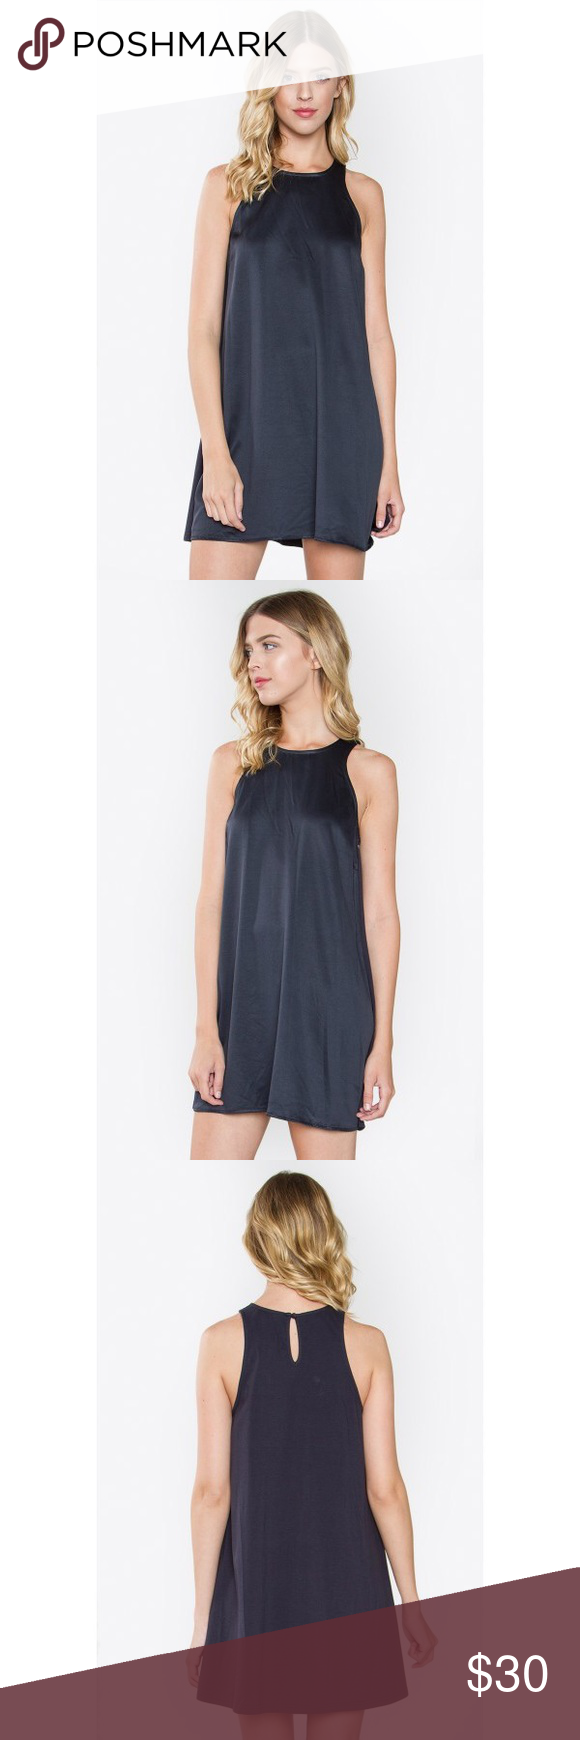 """Knit Dress Too cute to be true! Our Knit Dress is a simple piece but with the right accessories, you can definitely rock this dress! Pair with strappy heels and statement necklaces for a look well done.  - Simple sleeveless knit dress - Back button with key hole opening - Color: Navy  Size + Fit - Model is wearing size S - Measurements taken from size S - Length: 35"""" Dresses Midi"""